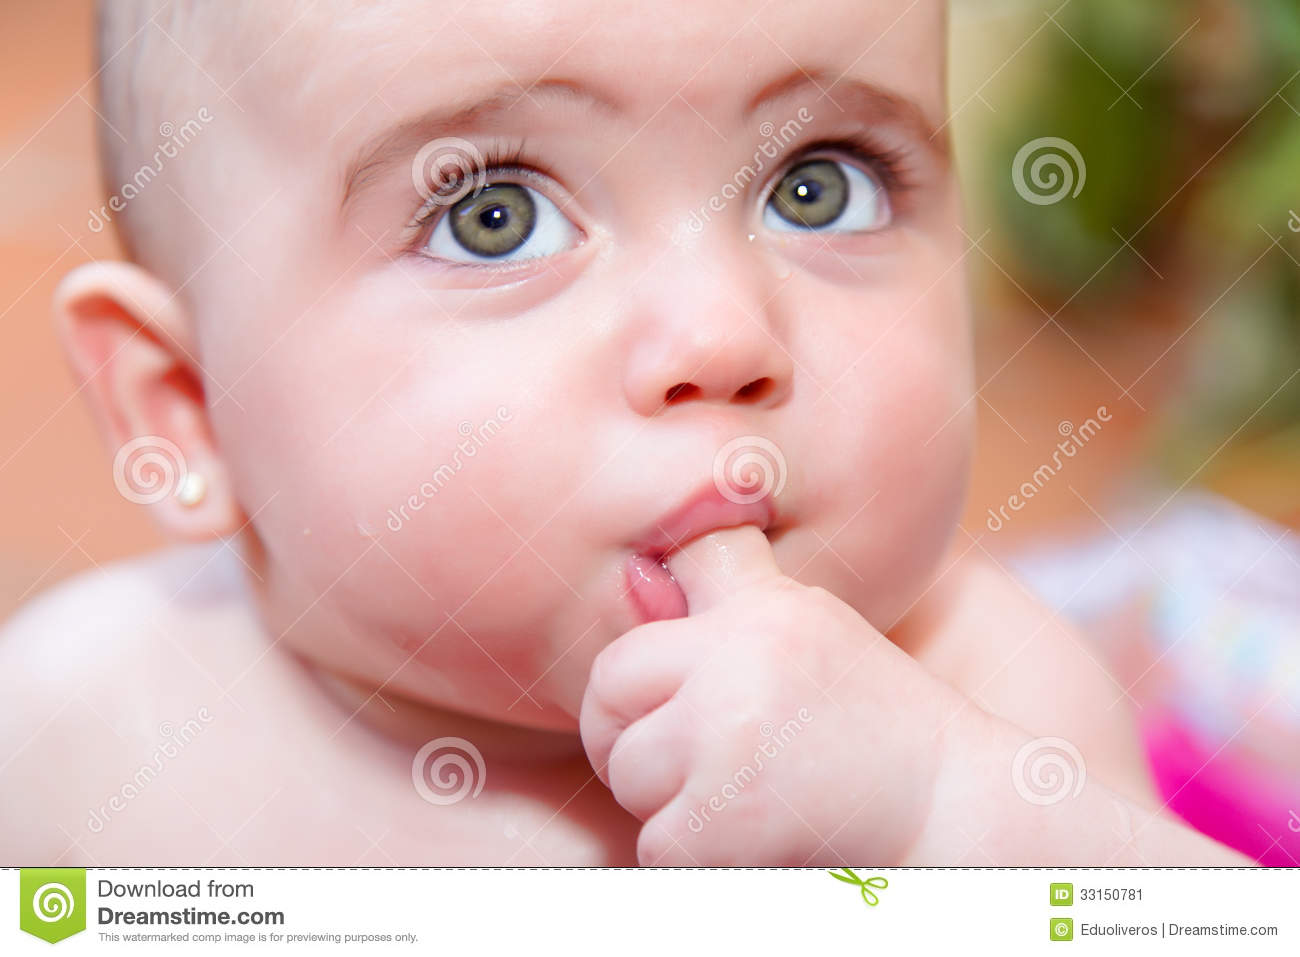 Cute Baby Licking Her Finger Stock Image - Image: 33150781